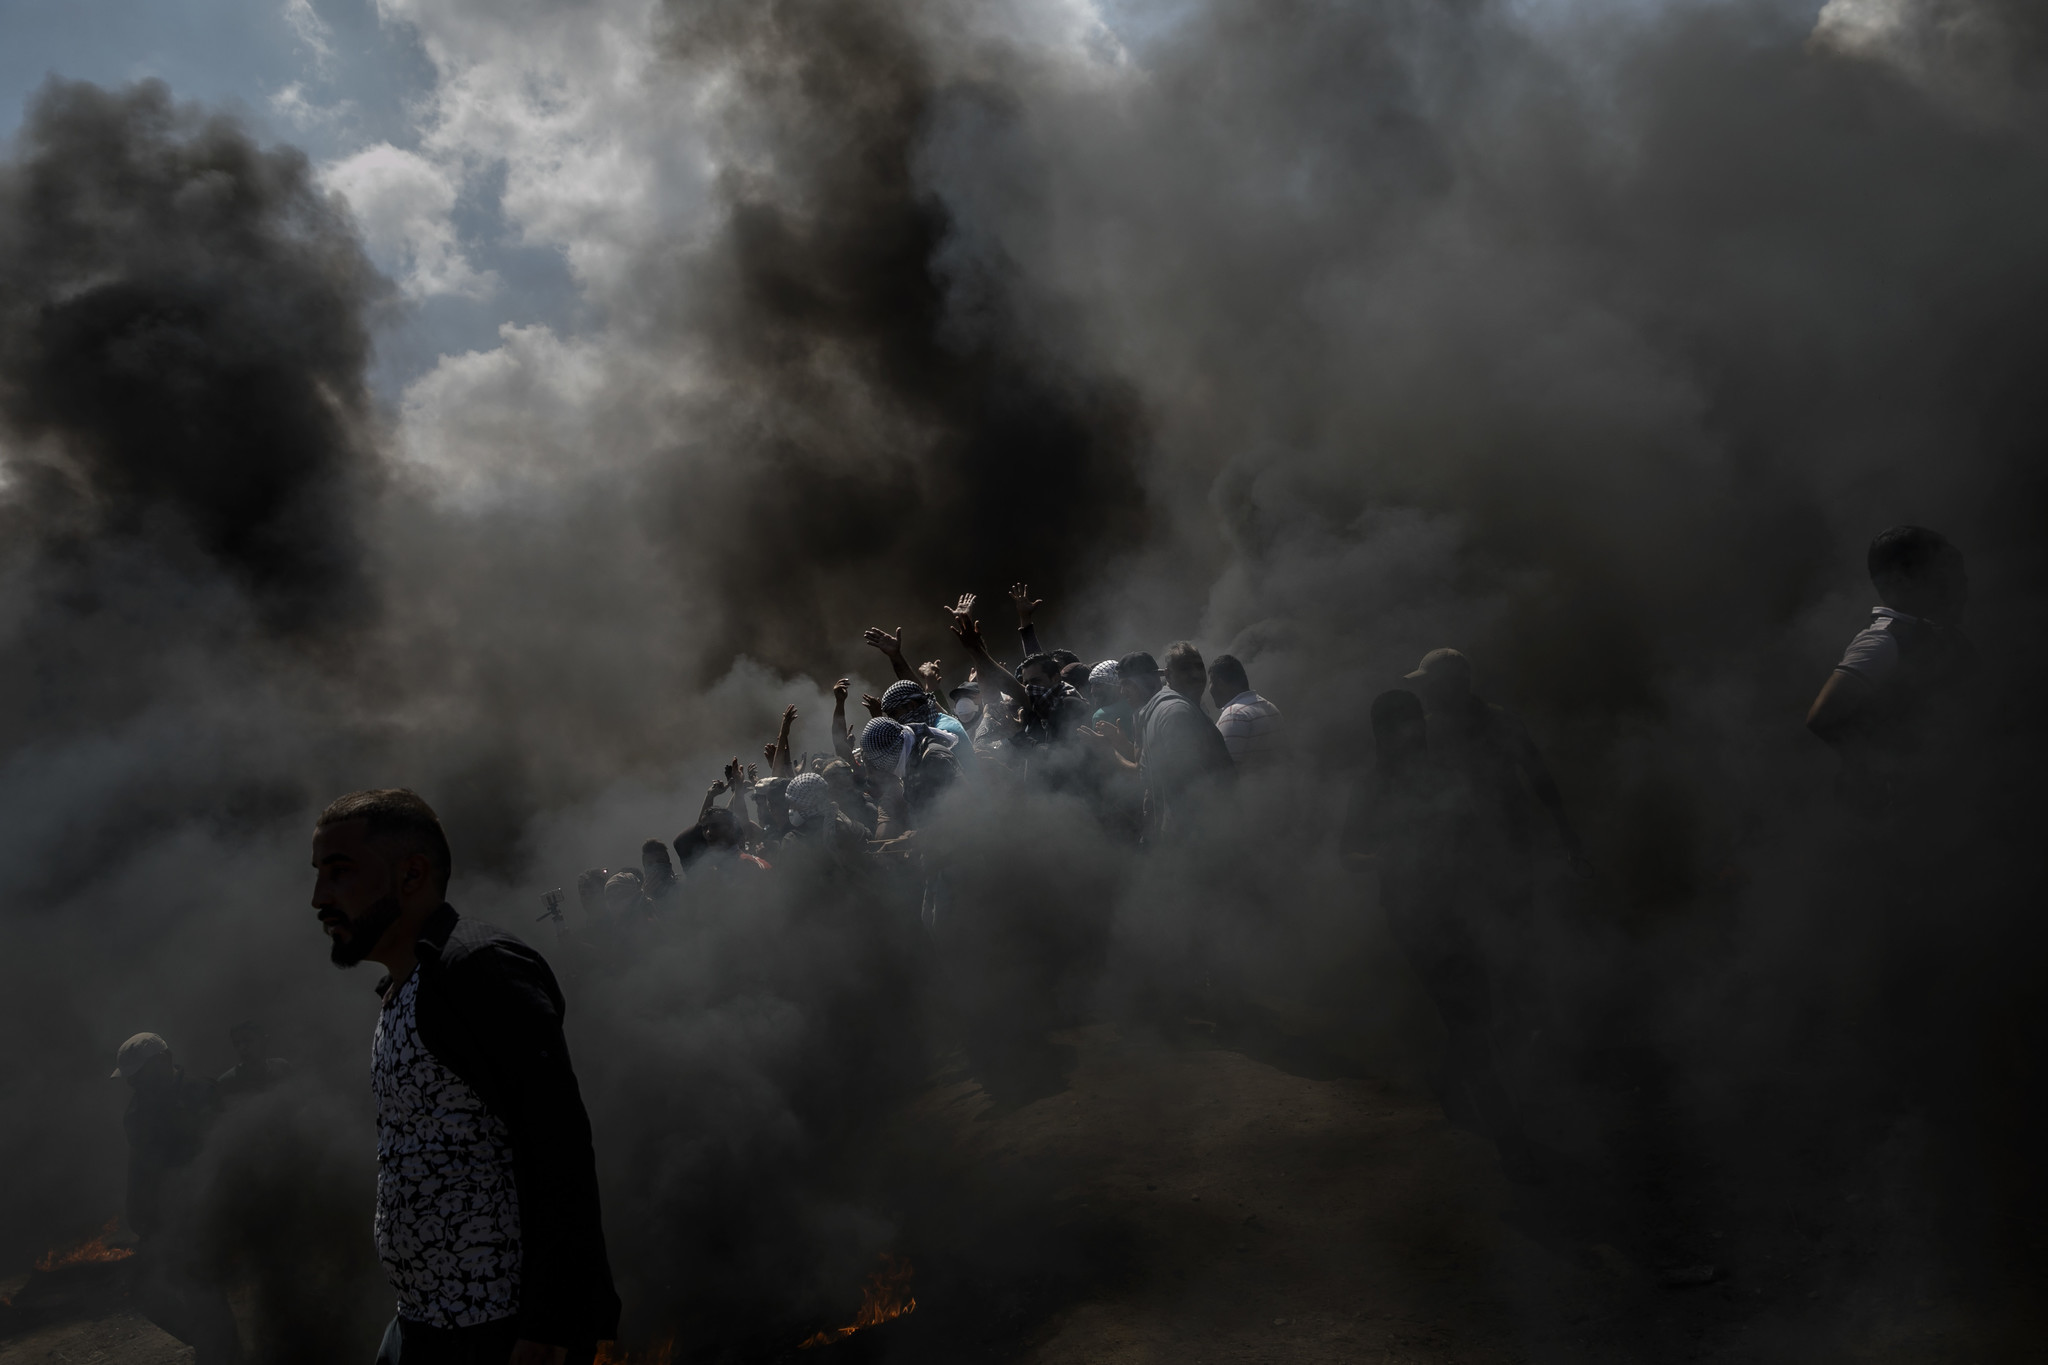 GAZA CITY, GAZA — MONDAY, MAY 14, 2018: Palestinians gather around to cheer and chant as they burn